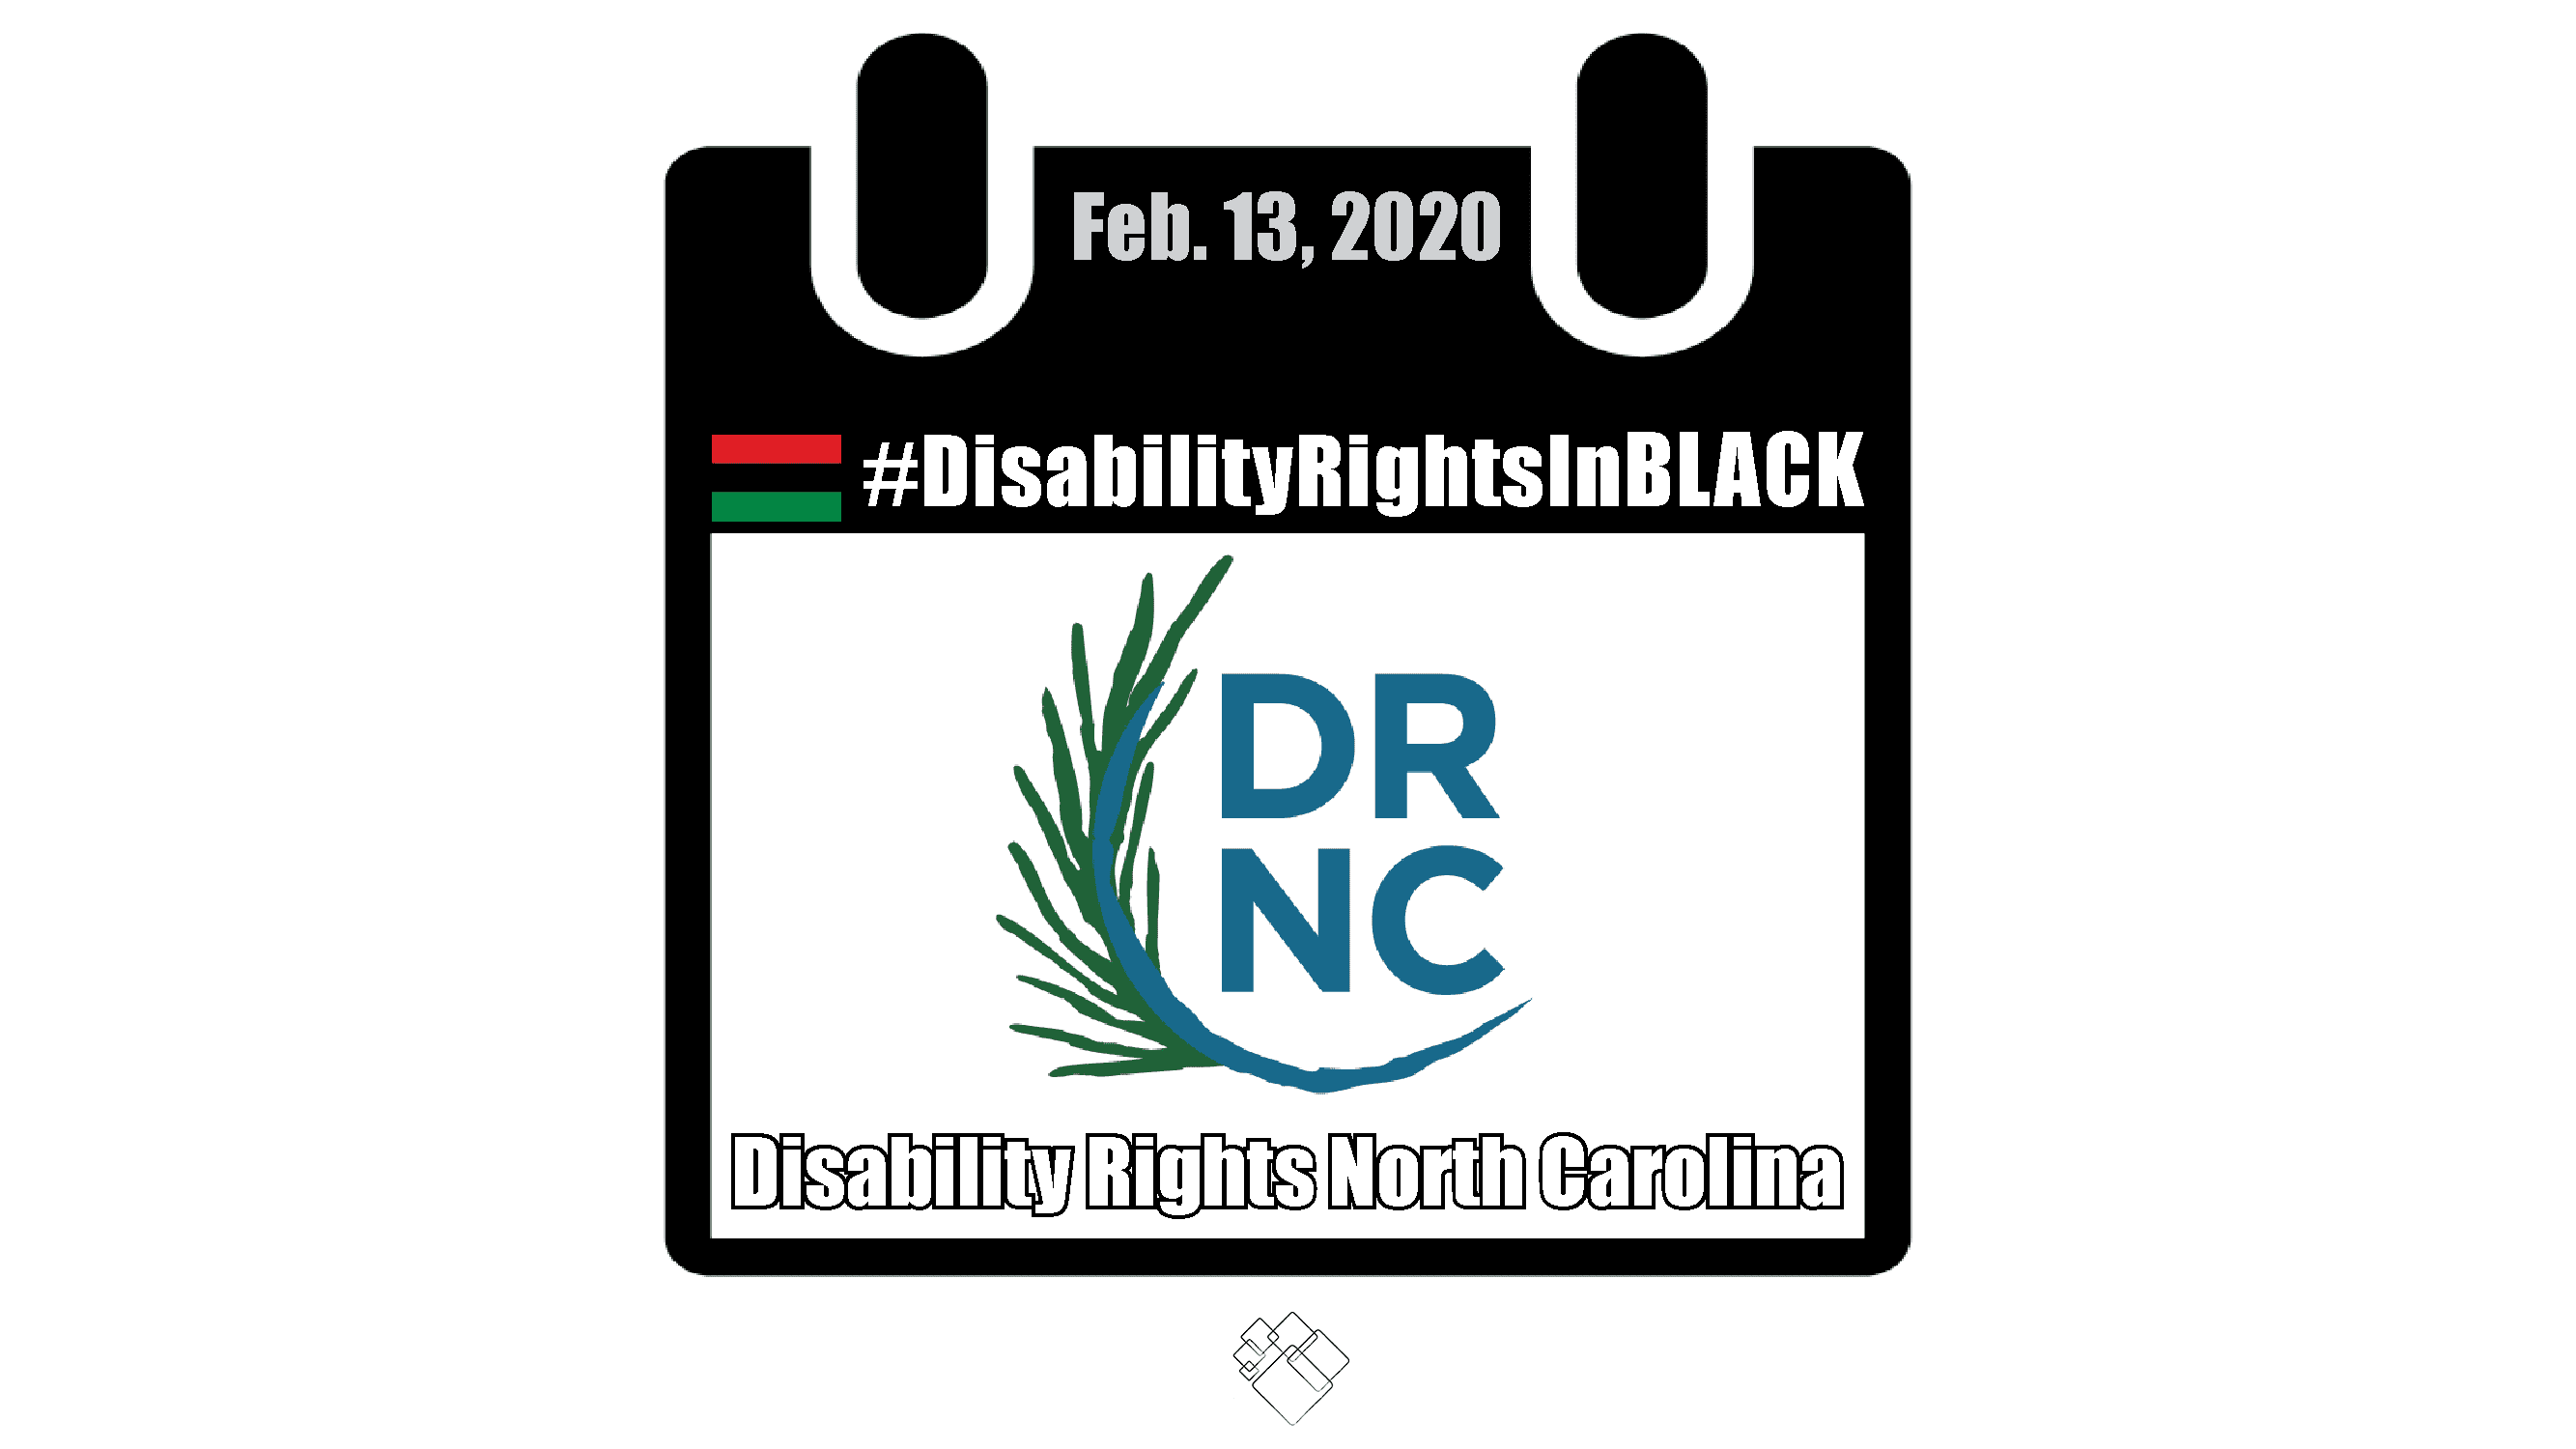 Disability Rights North Carolina: Disability Rights in